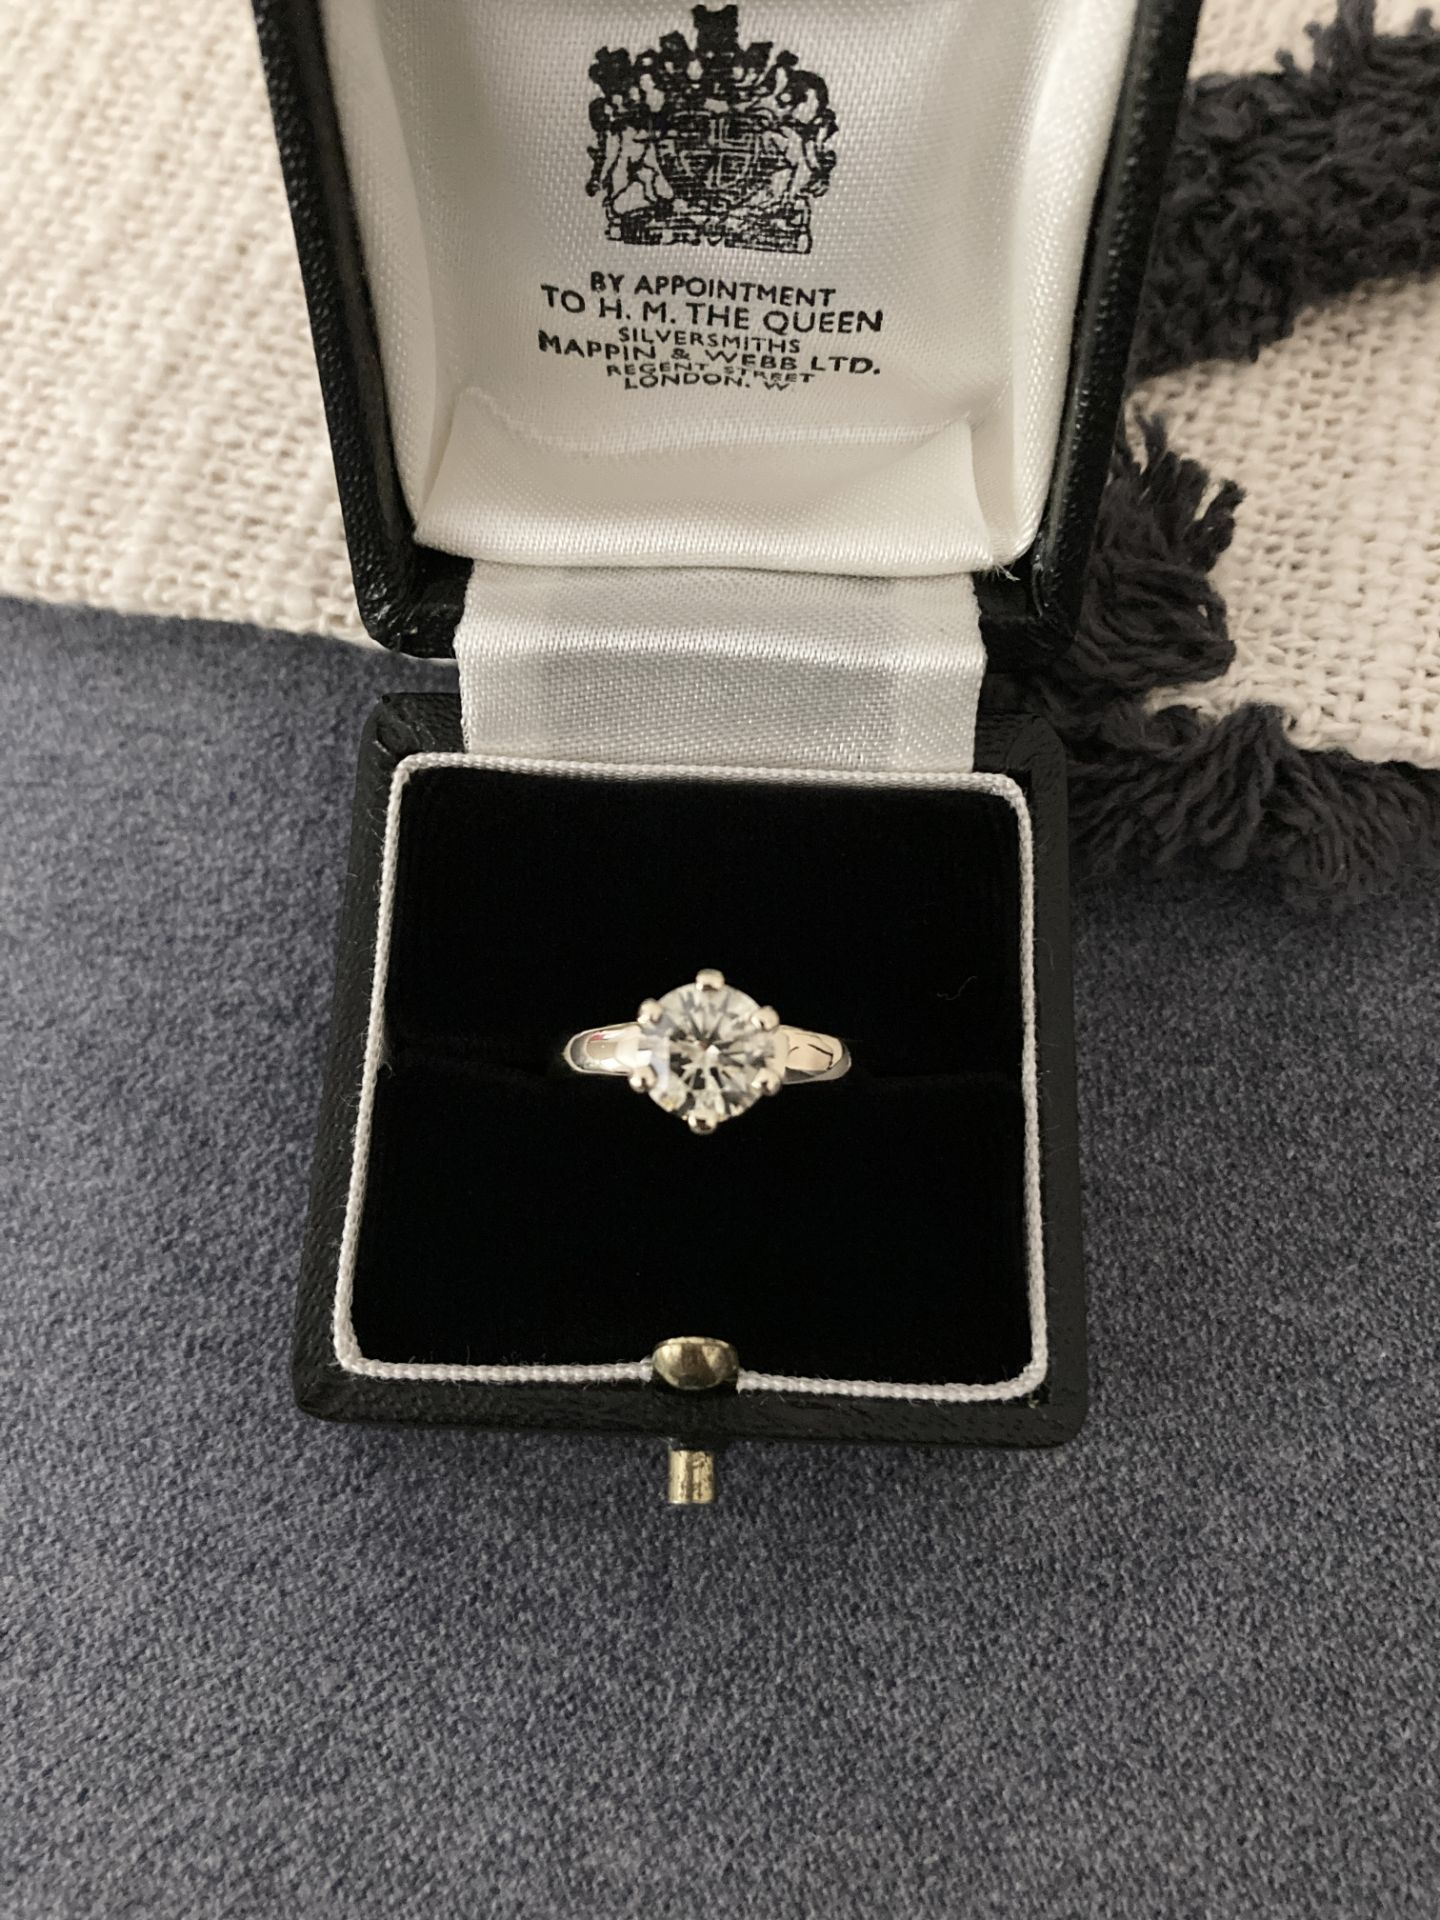 1.54CT DIAMOND SOLITAIRE RING Y. GOLD (ROUND BRILLIANT) - 2012 VALUATION £6,200 INCLUDED - Image 4 of 14